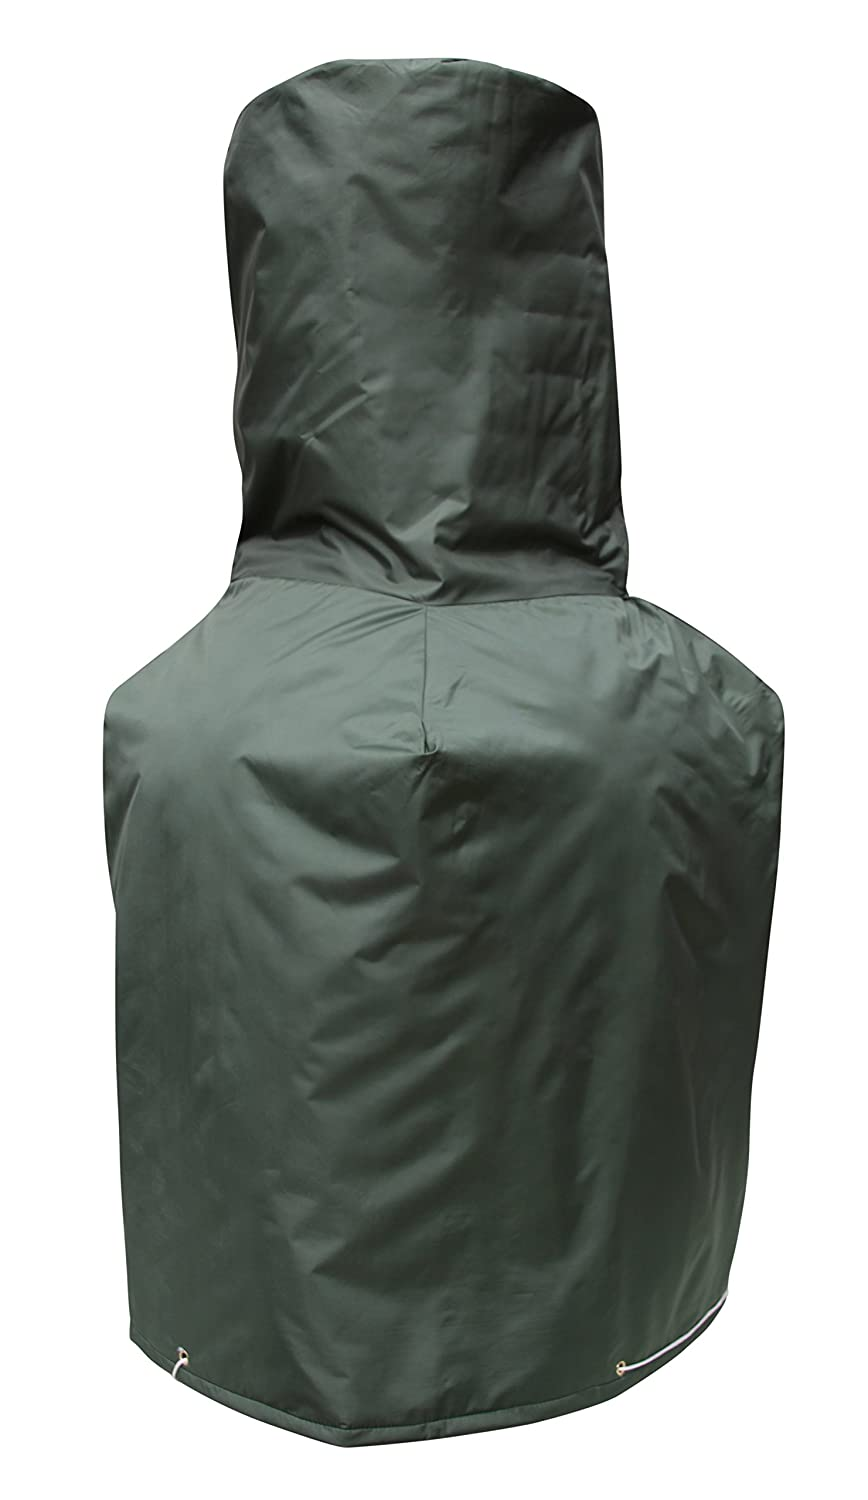 Gardeco Cover, Green, 52x52x132 cm WINTERCOAT-C51